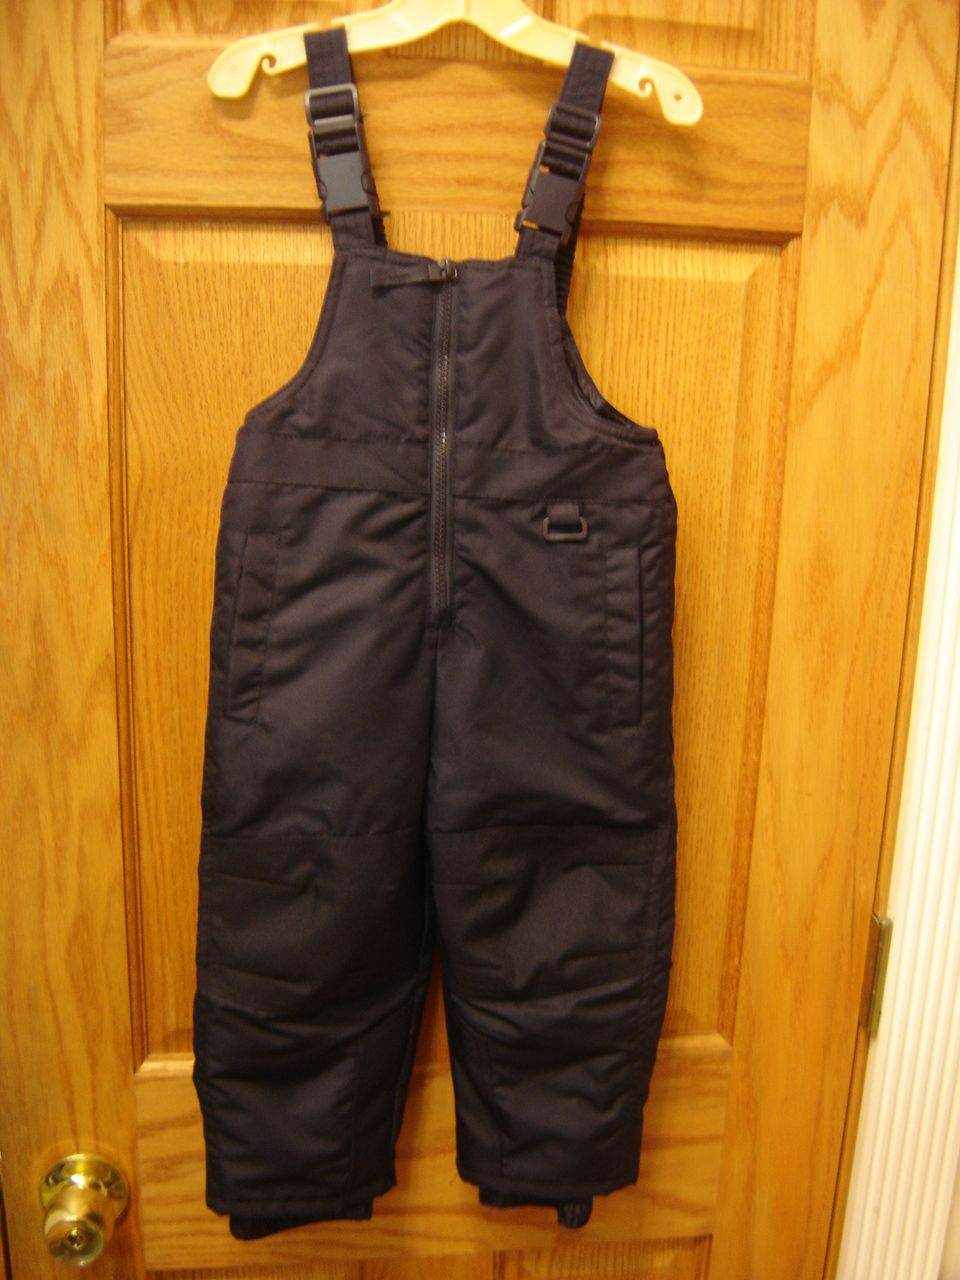 Circo Boys Size 18 M Navy Blue Suspender Style Snow Pants | Enkore ...